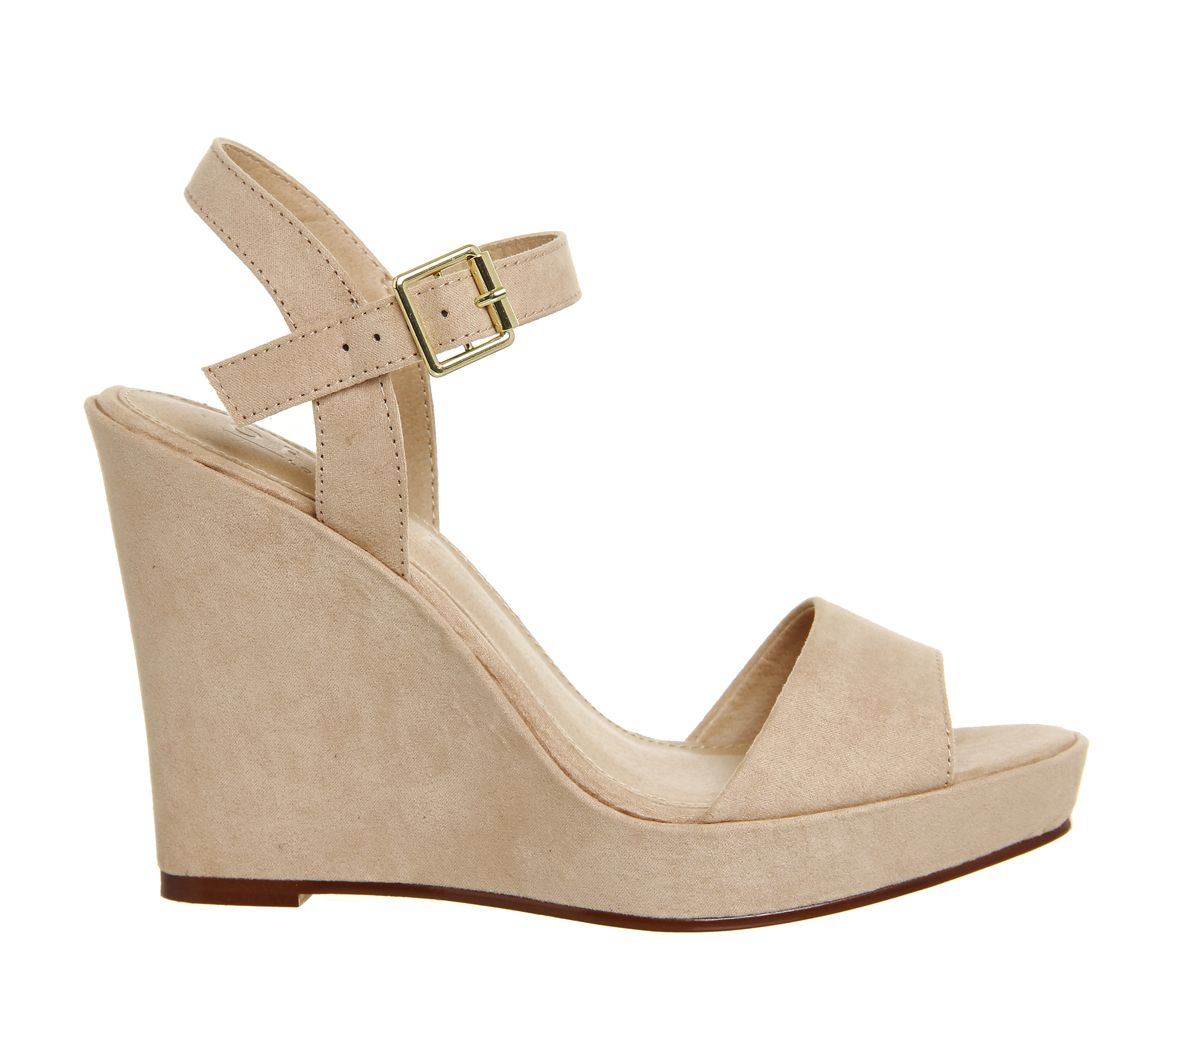 Office Mai Tai Two Part Wedge Sandals From Co Uk